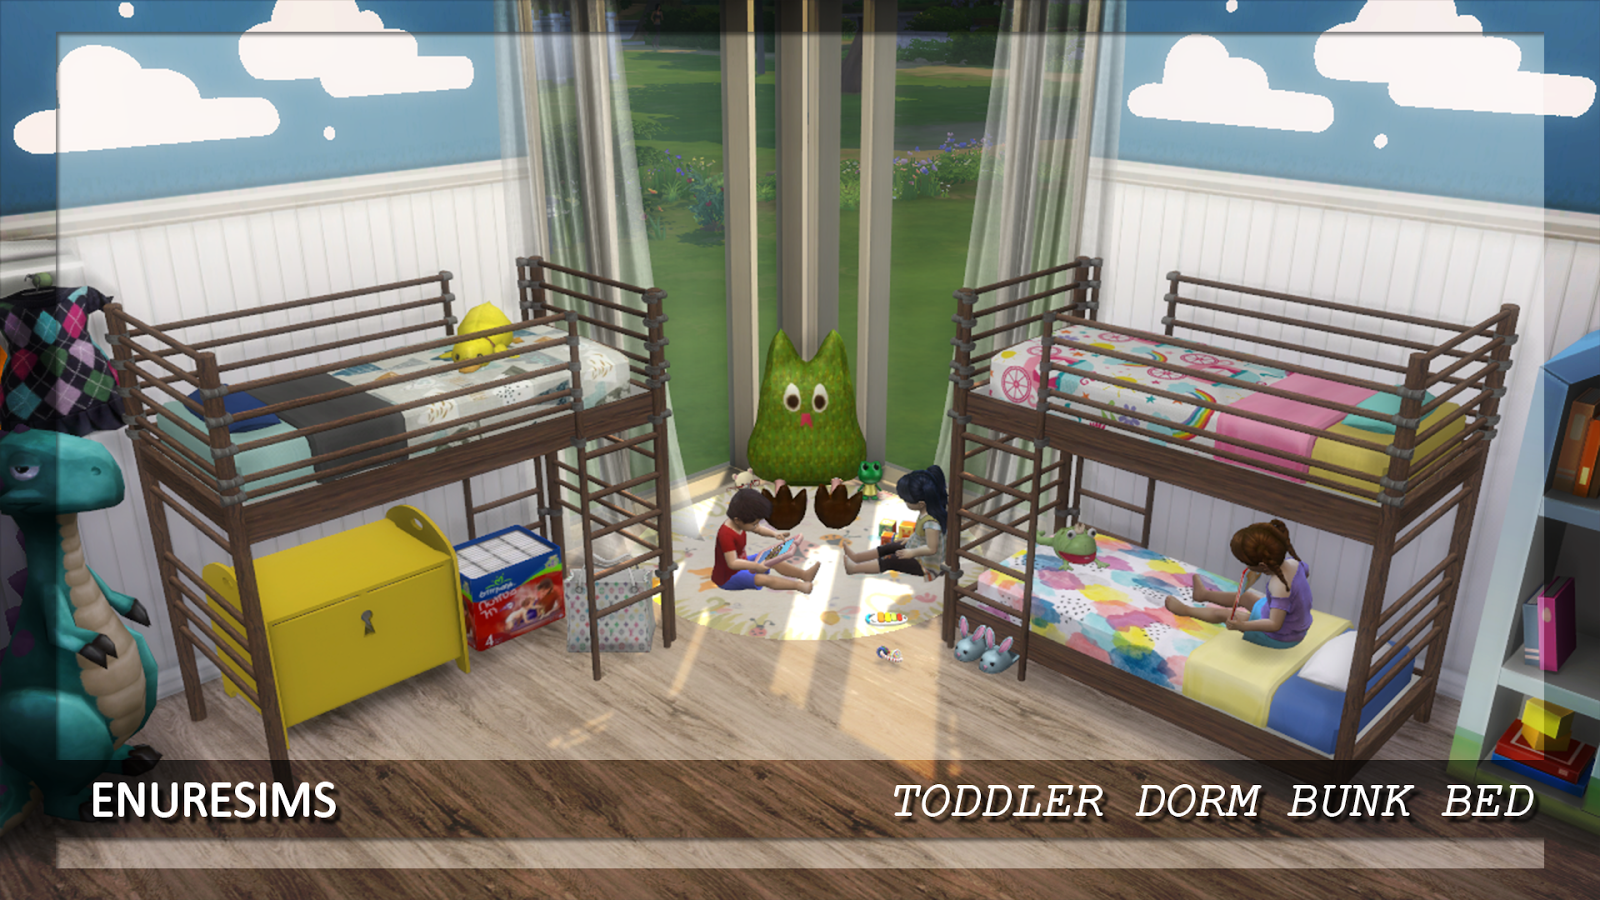 sims 4 bunk beds ts3 to ts4 dorm bunk bed for toddlers two ...